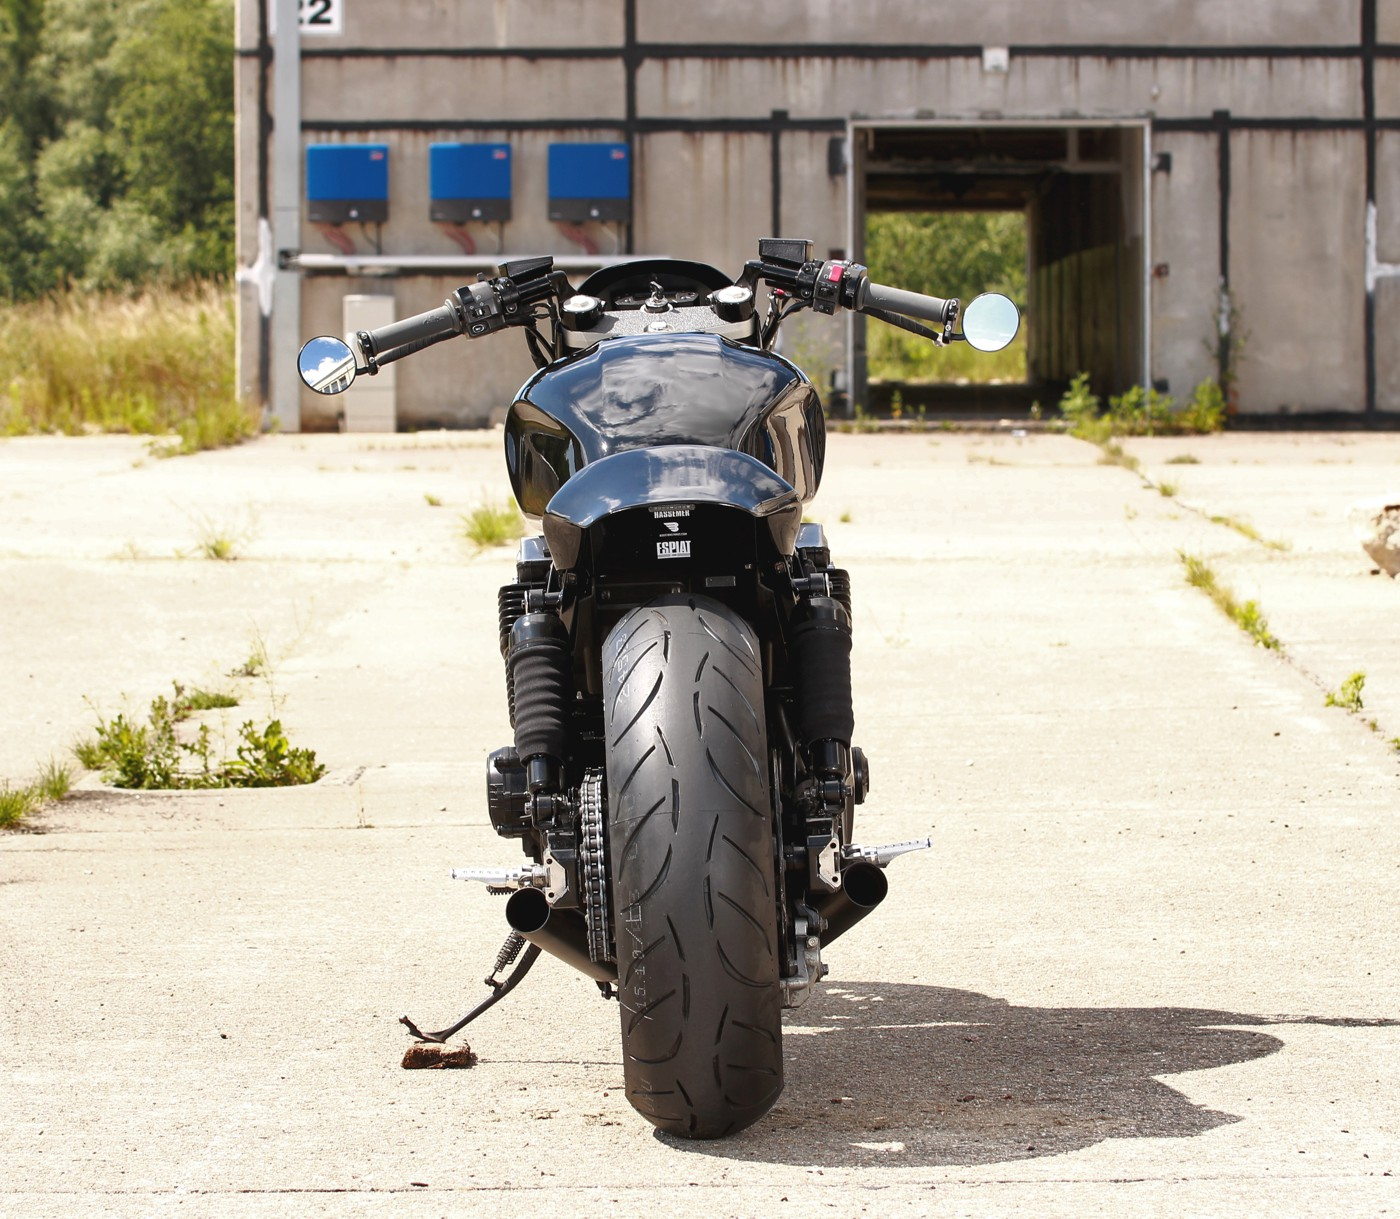 tail-xjr-daniel-schuh-dragster-cafe-racer